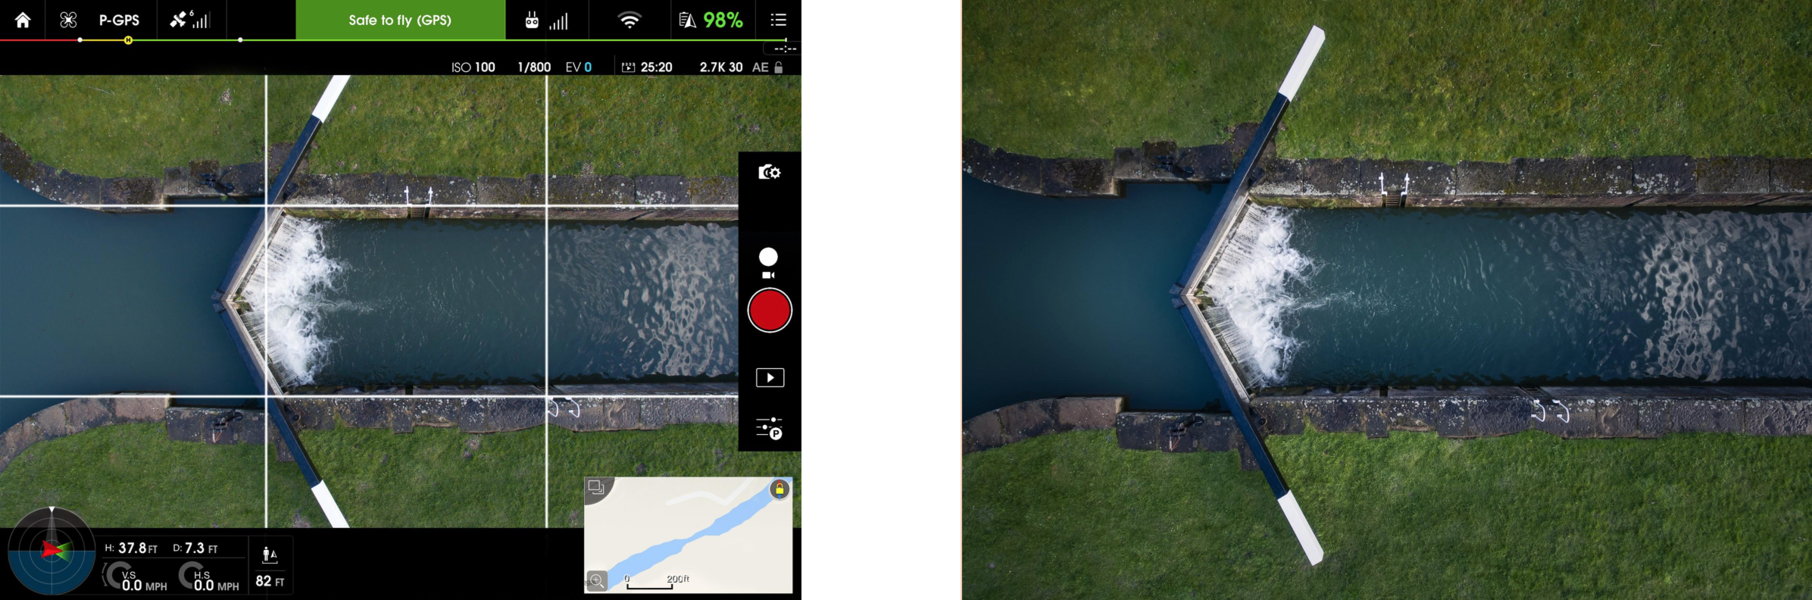 18 Tips for Taking Your Drone Photography to the Next Level